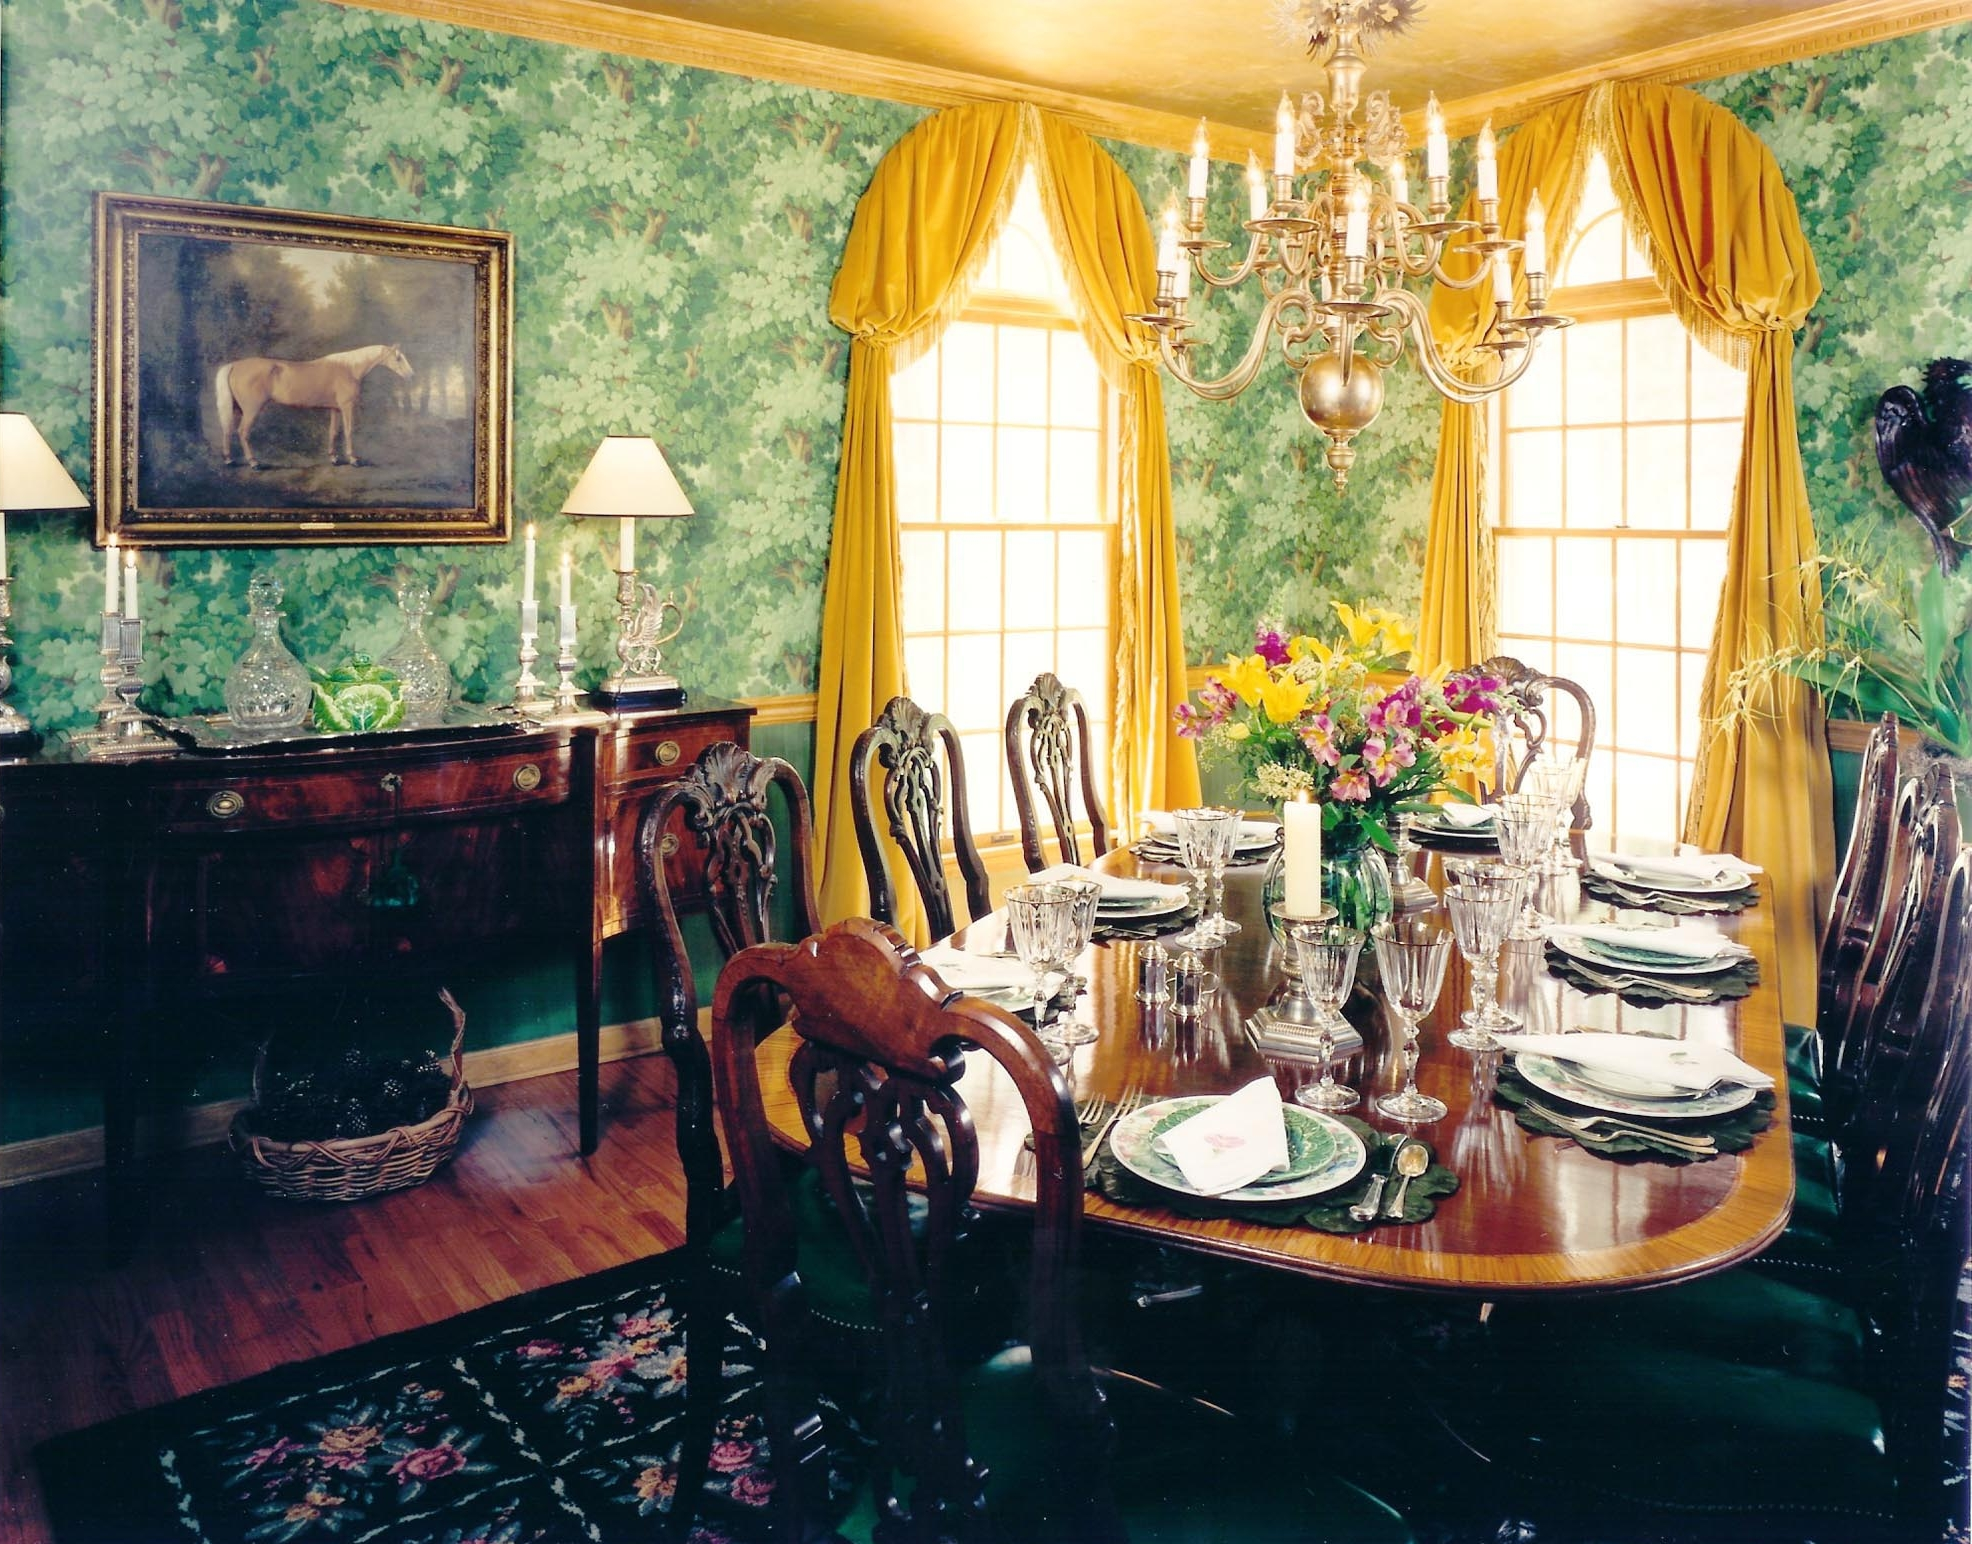 Bright dining area with wooden table for eight and yellow curtain